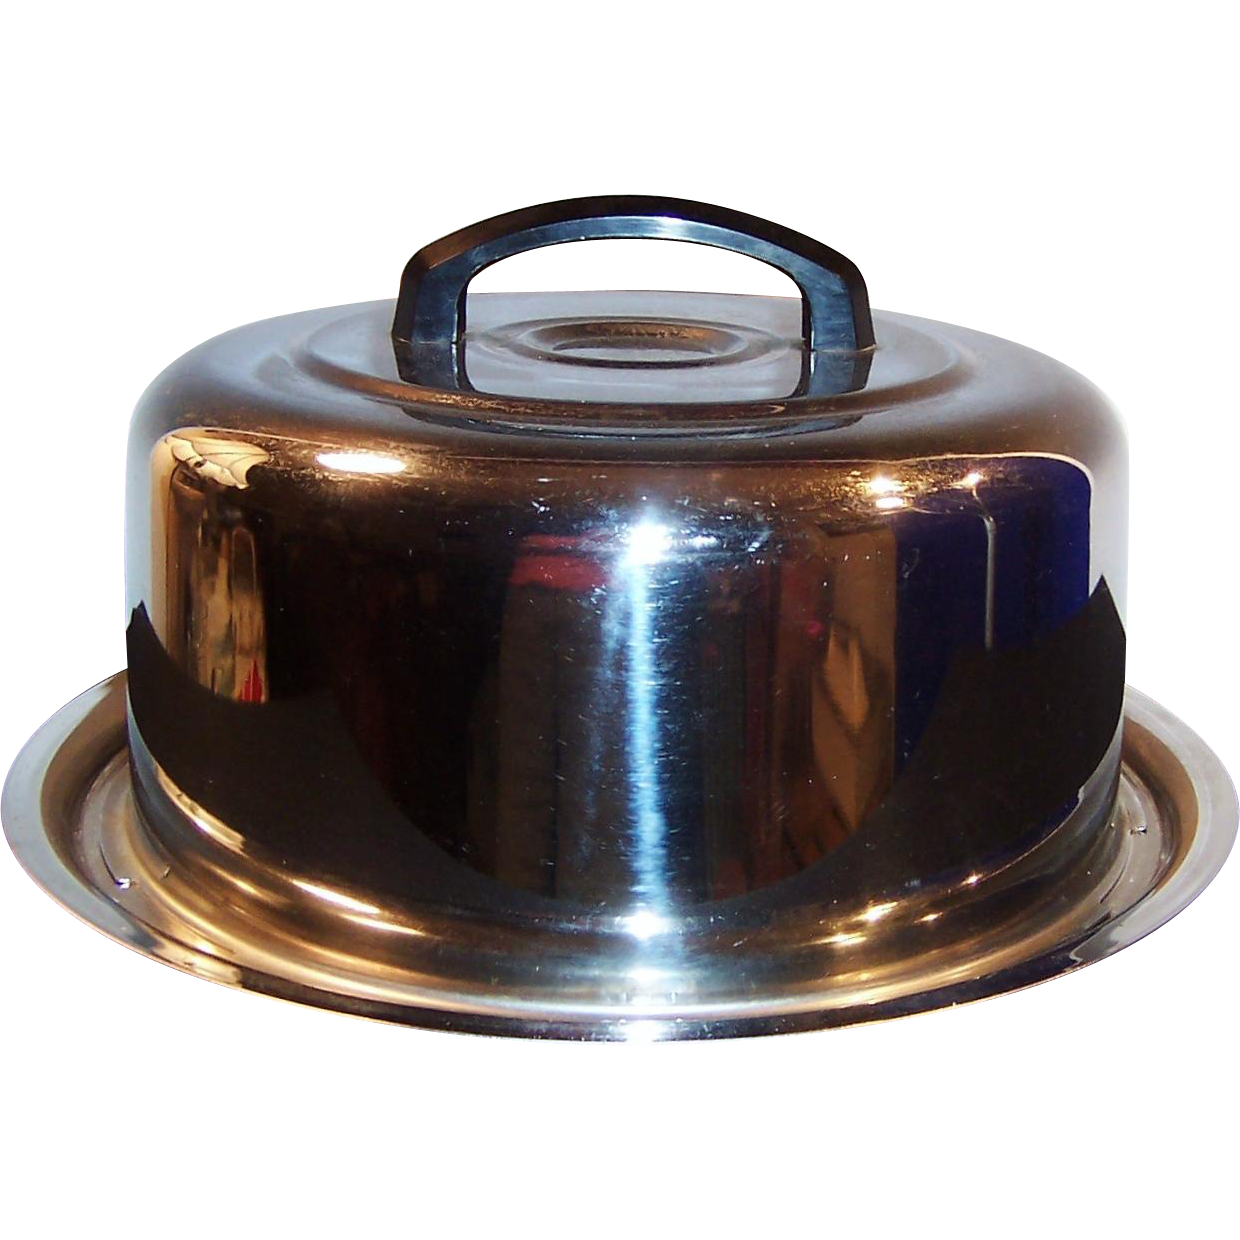 Everedy Mid-Century Chrome Cake Carrier / Keeper / Holder / Saver